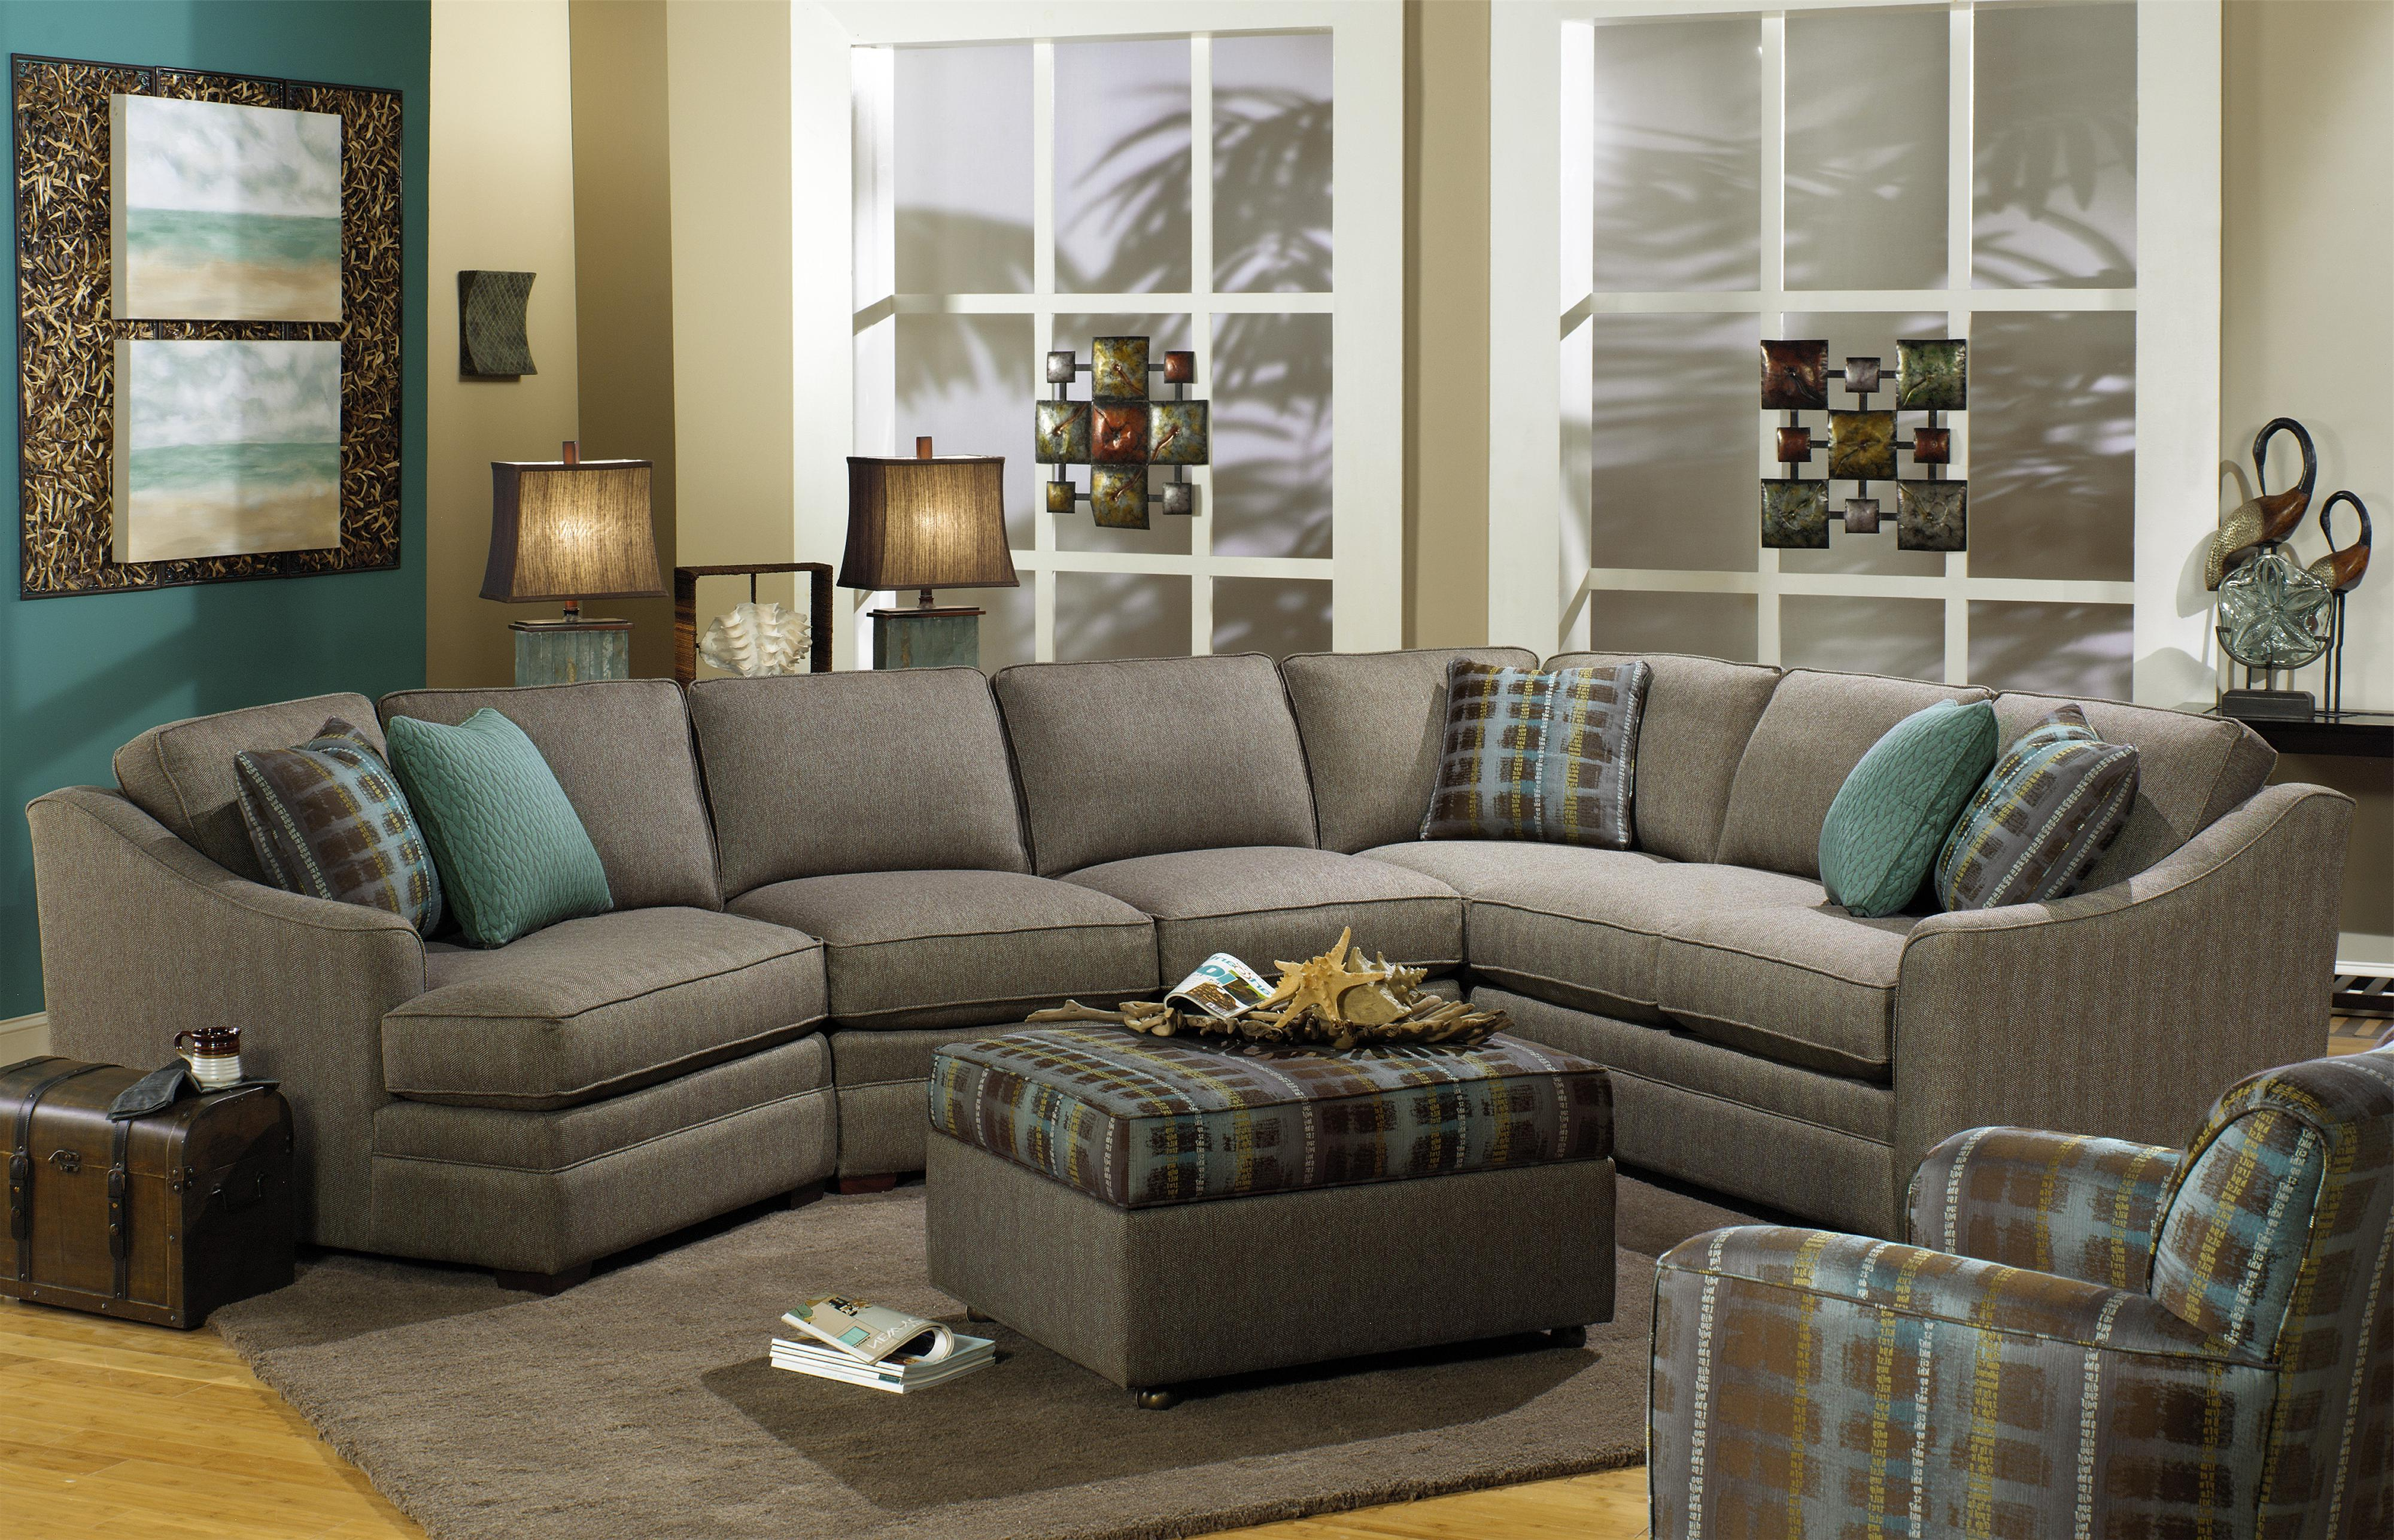 B>Customizable</b> 3 Piece Sectional With Raf Cuddlercraftmaster Regarding Popular Meyer 3 Piece Sectionals With Raf Chaise (View 3 of 20)